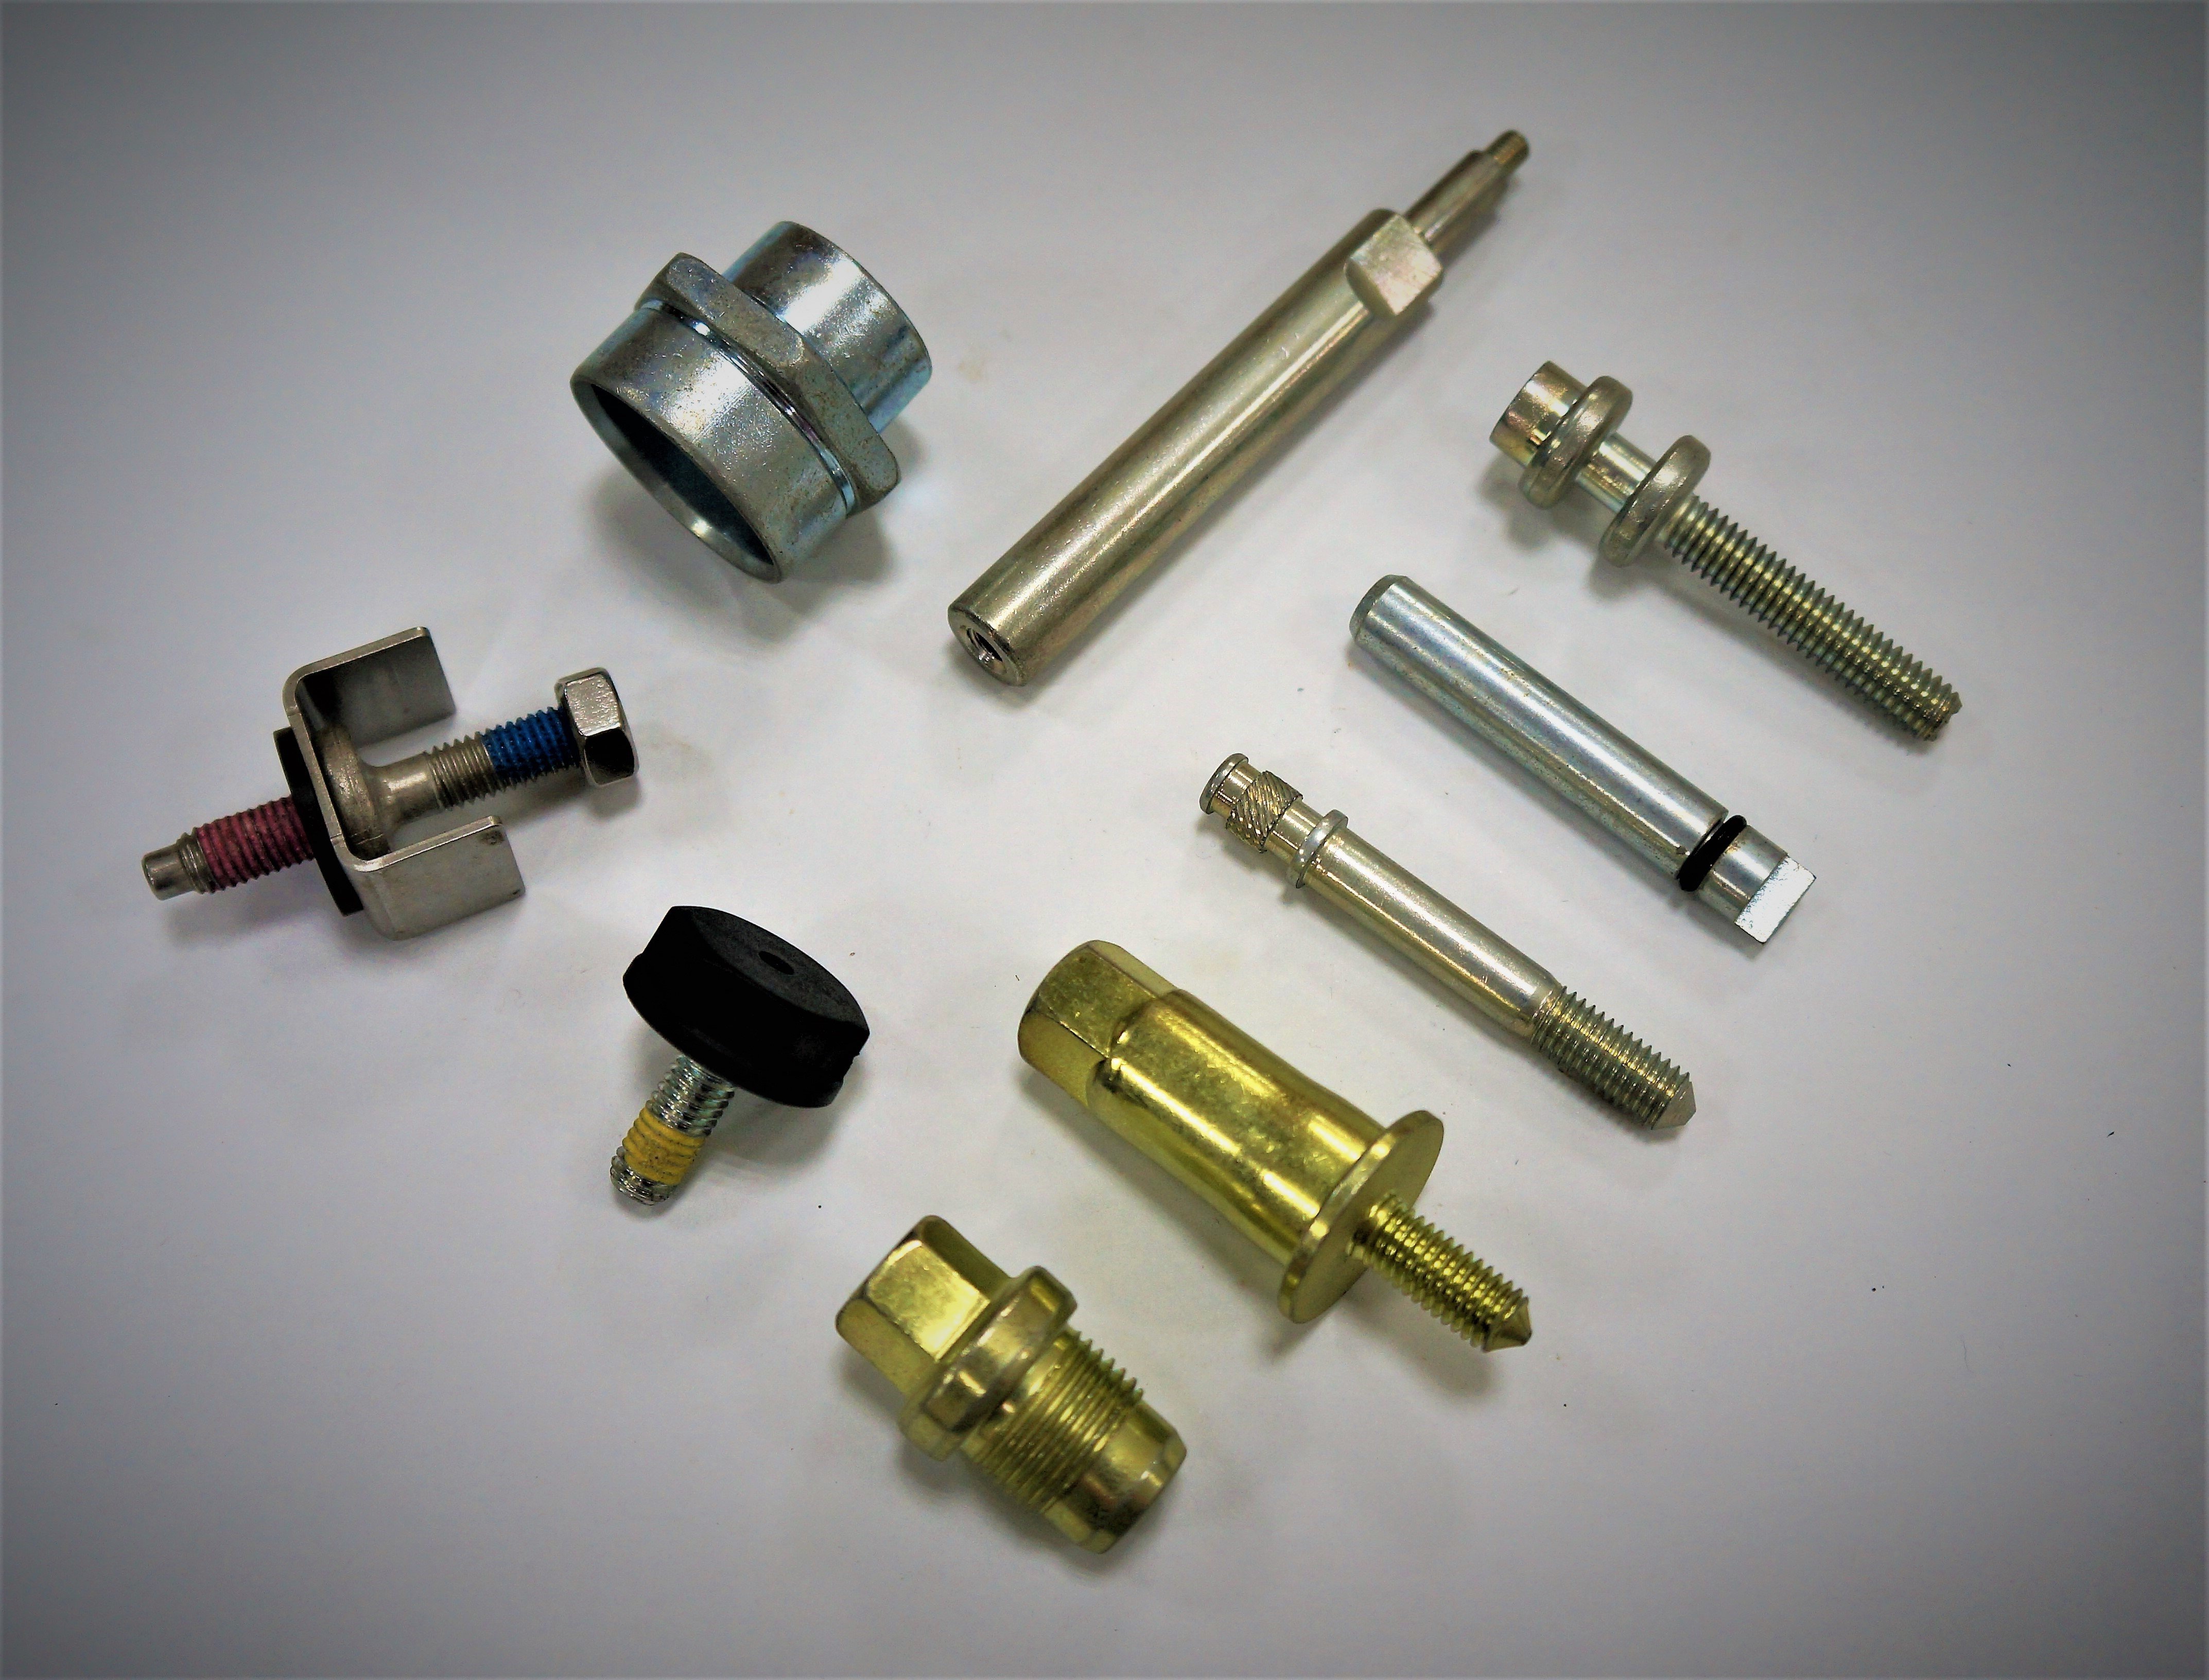 4x4 Pick Up Special Screw with Nylon for Vehicle Fastener made by Sunny Screw Industry 三能螺栓工業股份有限公司 - MatchSupplier.com